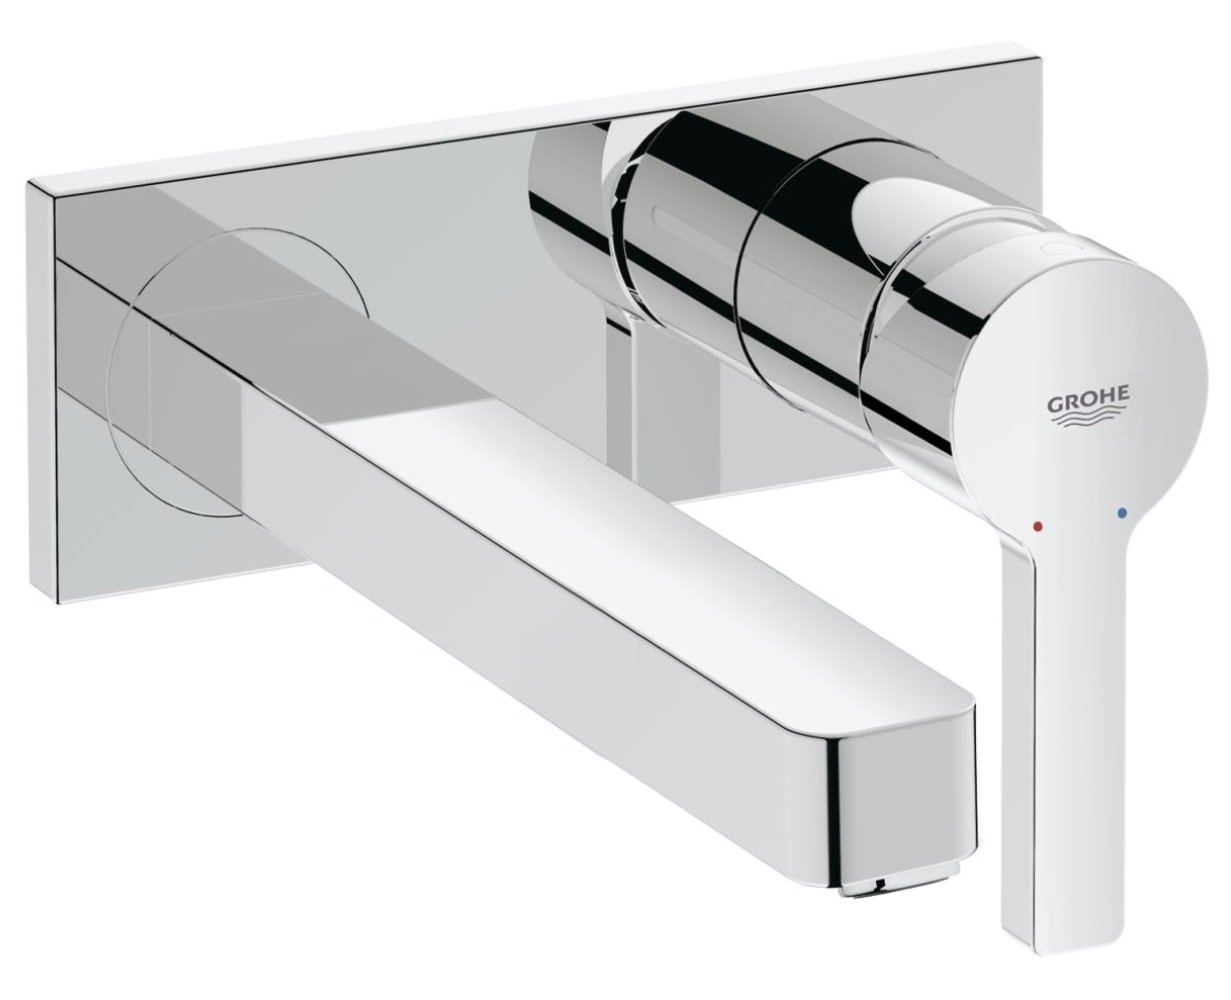 Grohe Lineare M Size Wall Mounted 2 Hole Basin Mixer Tap